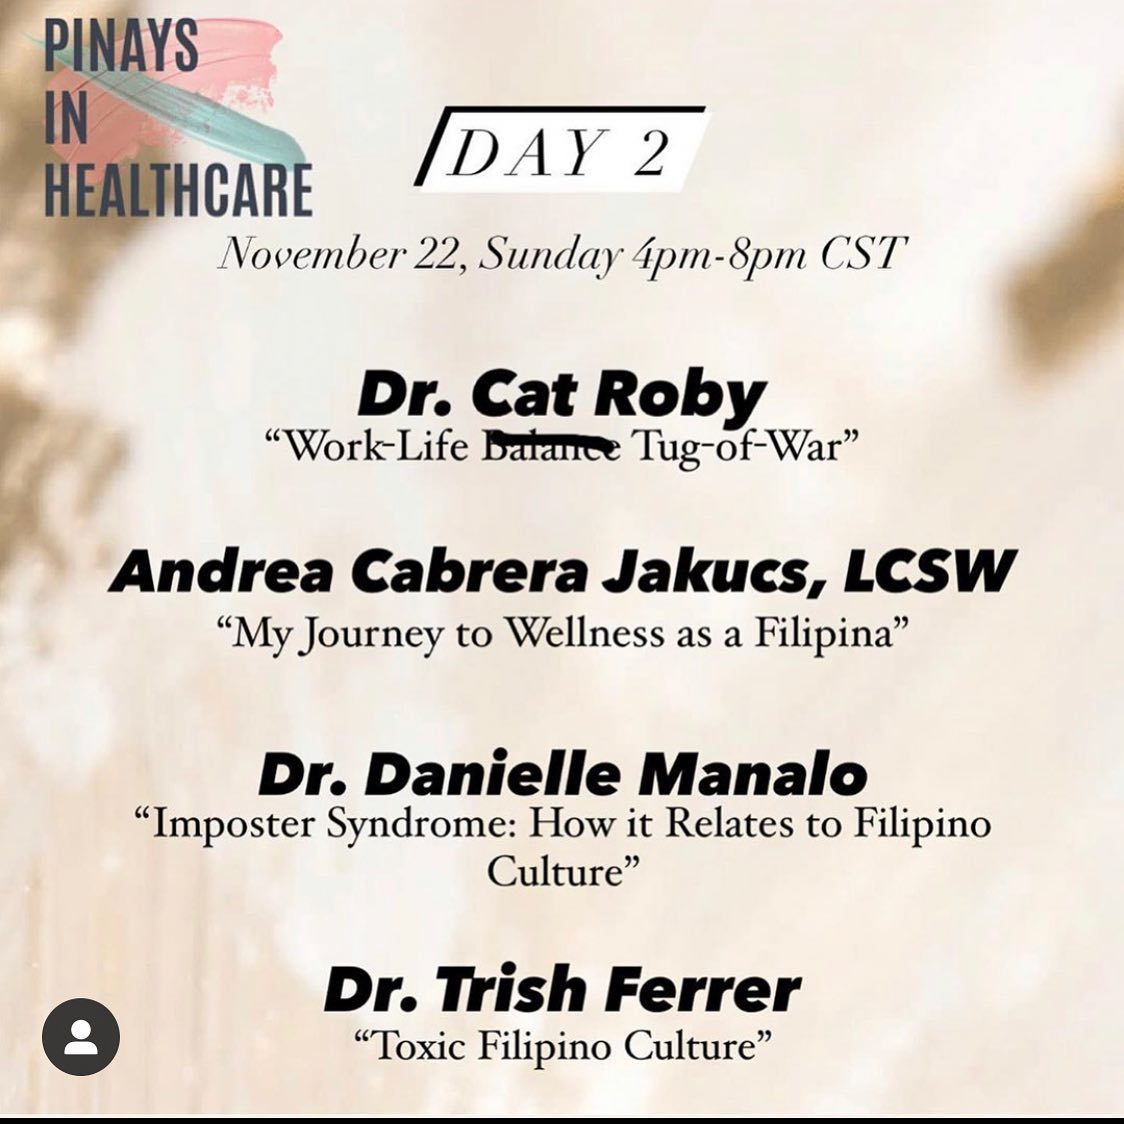 Pinays in Healthcare